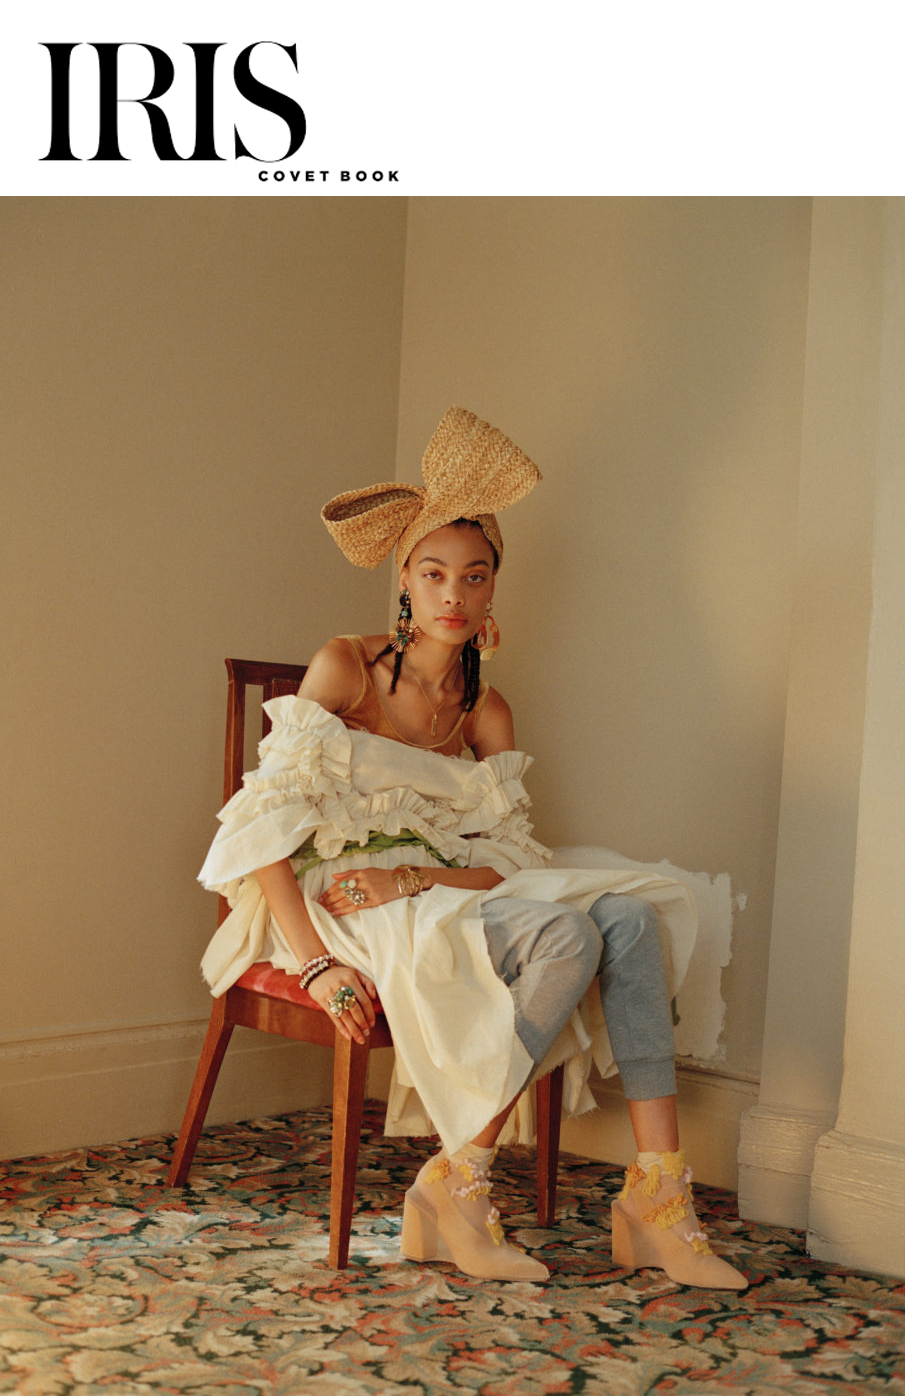 iris covet book playing house fashion editorial eaturing kelsey randall muslin ruffle angel dress